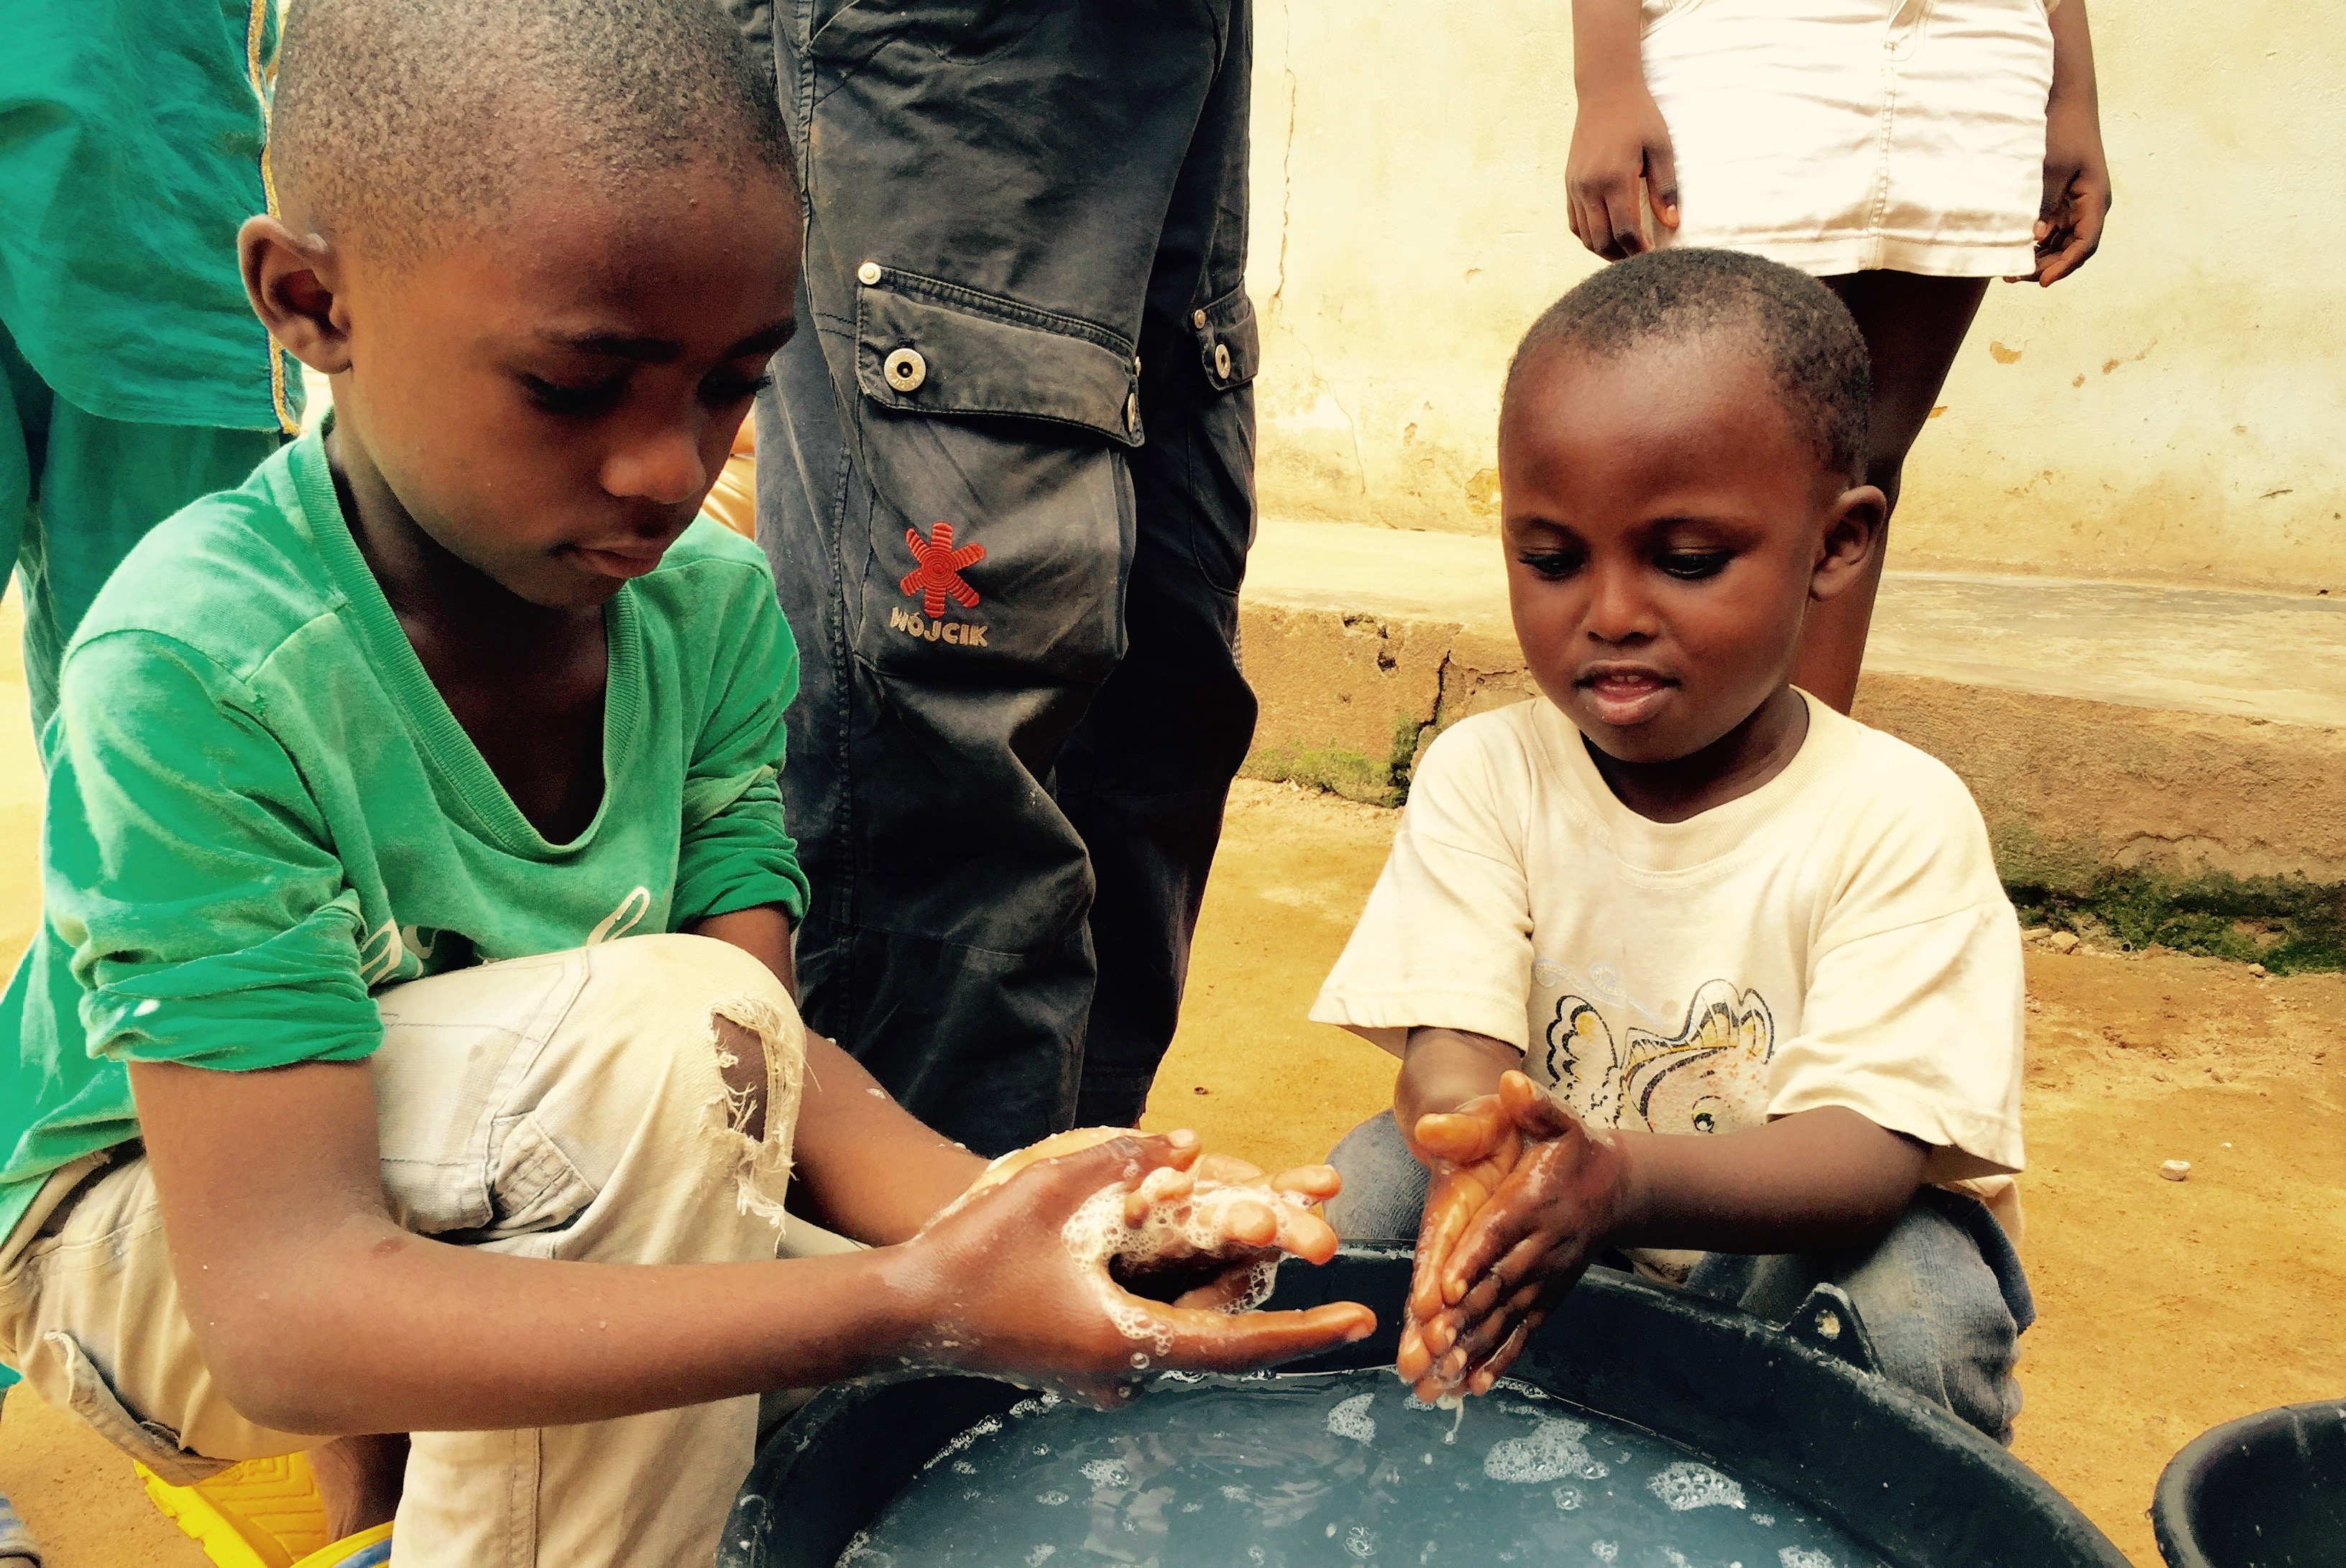 The distribution of soap in poverty-stricken regions significantly improves local hand hygiene practices.